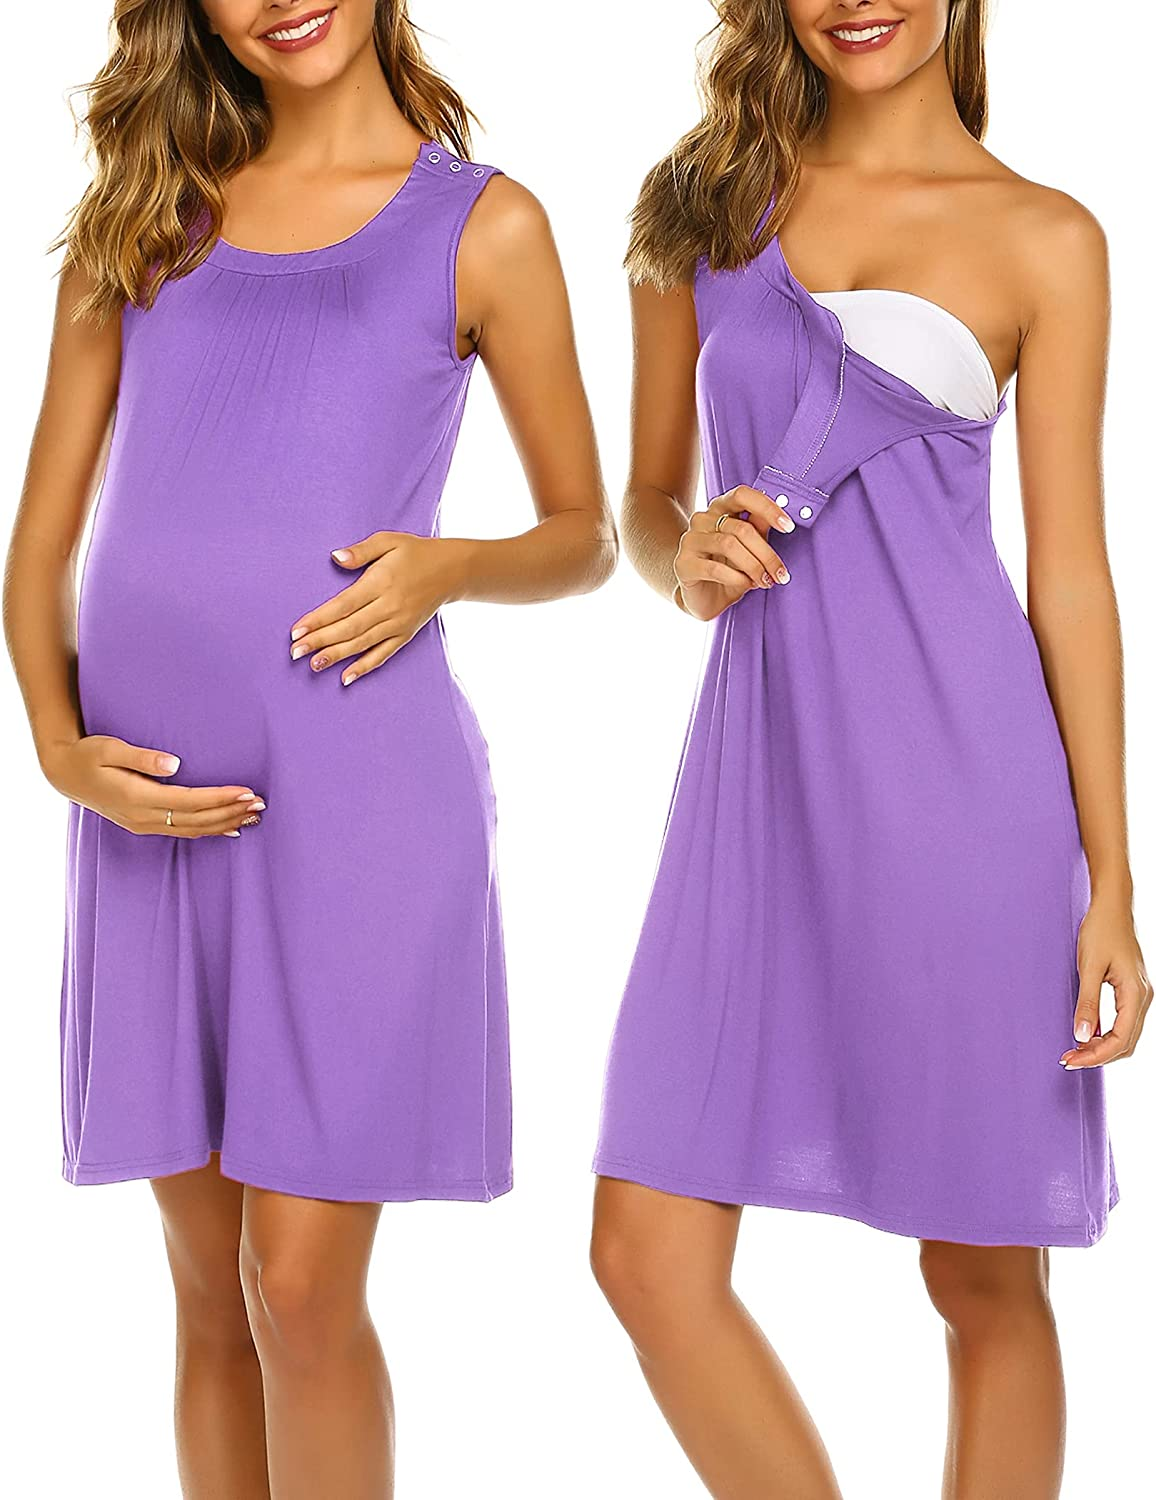 Ekouaer Womens Delivery/Labor/Maternity/Nursing Night Dress Pregnancy Nightgown for Breastfeeding S-XXL at  Women's Clothing store